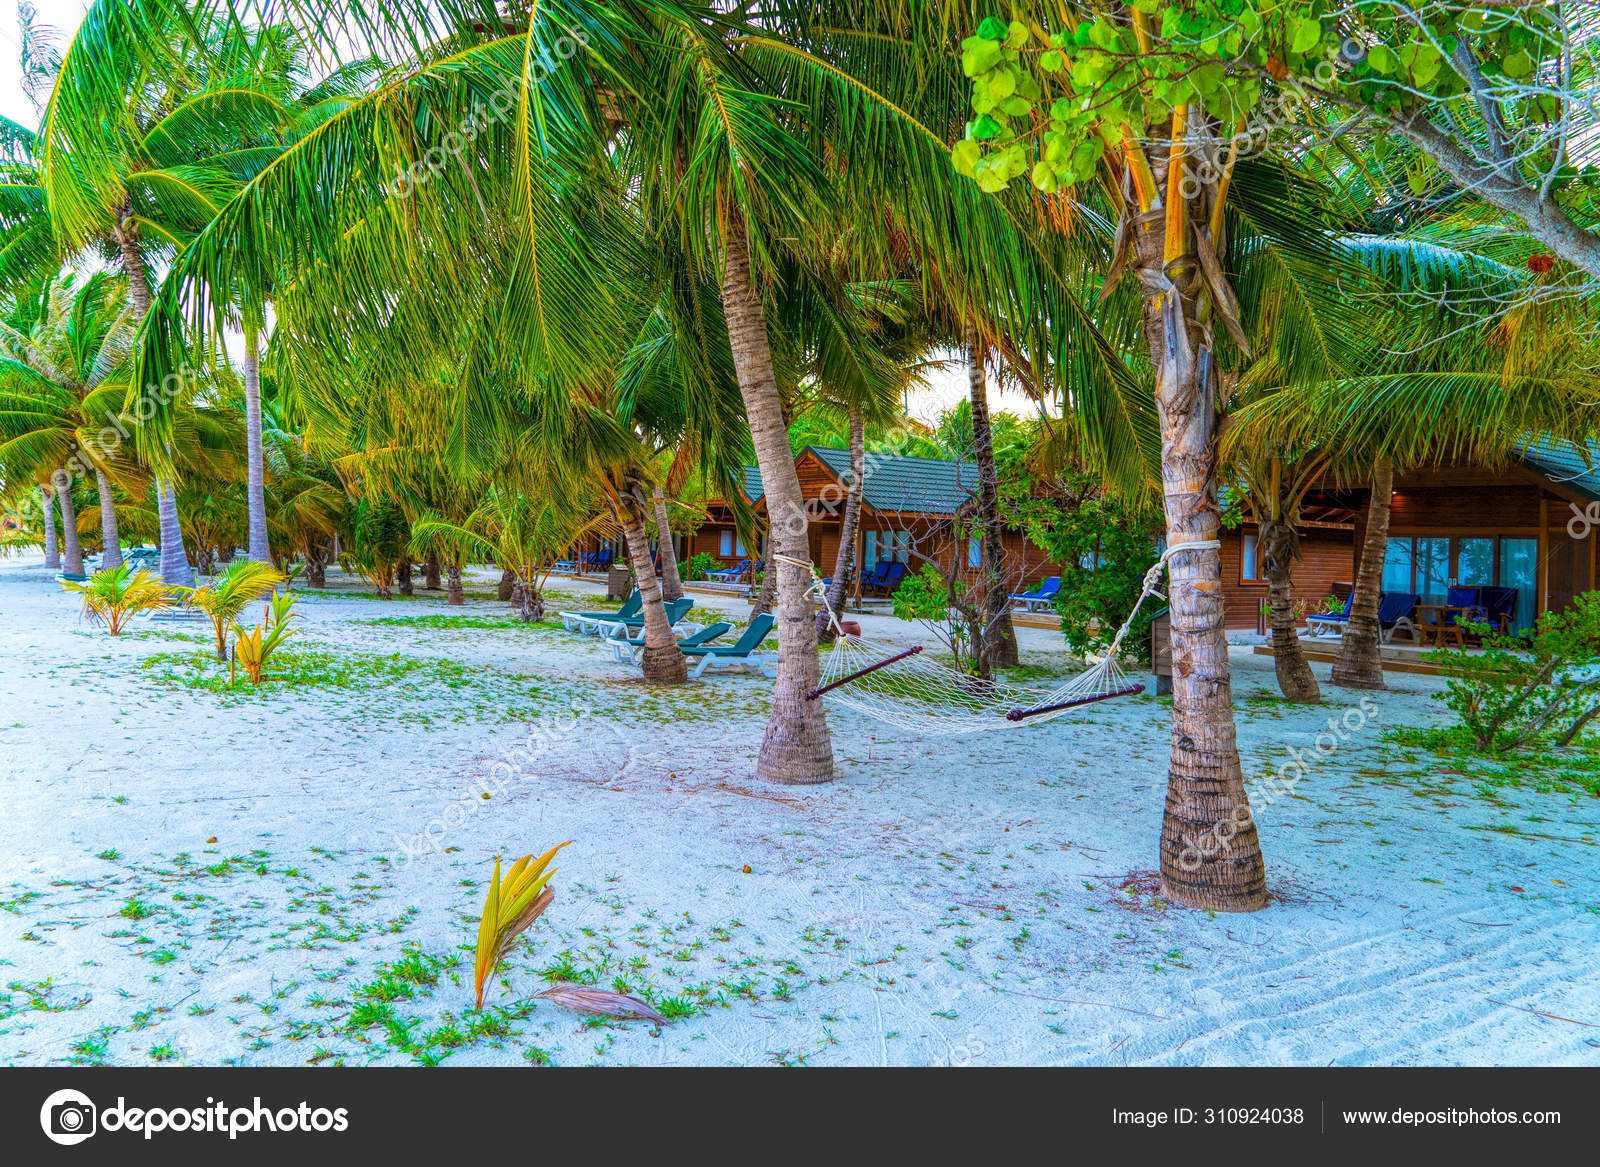 Tropical Bungalow On The Amazing Beach With A Palm Tree Stock Photo Image By Lotosfoto1 310924038